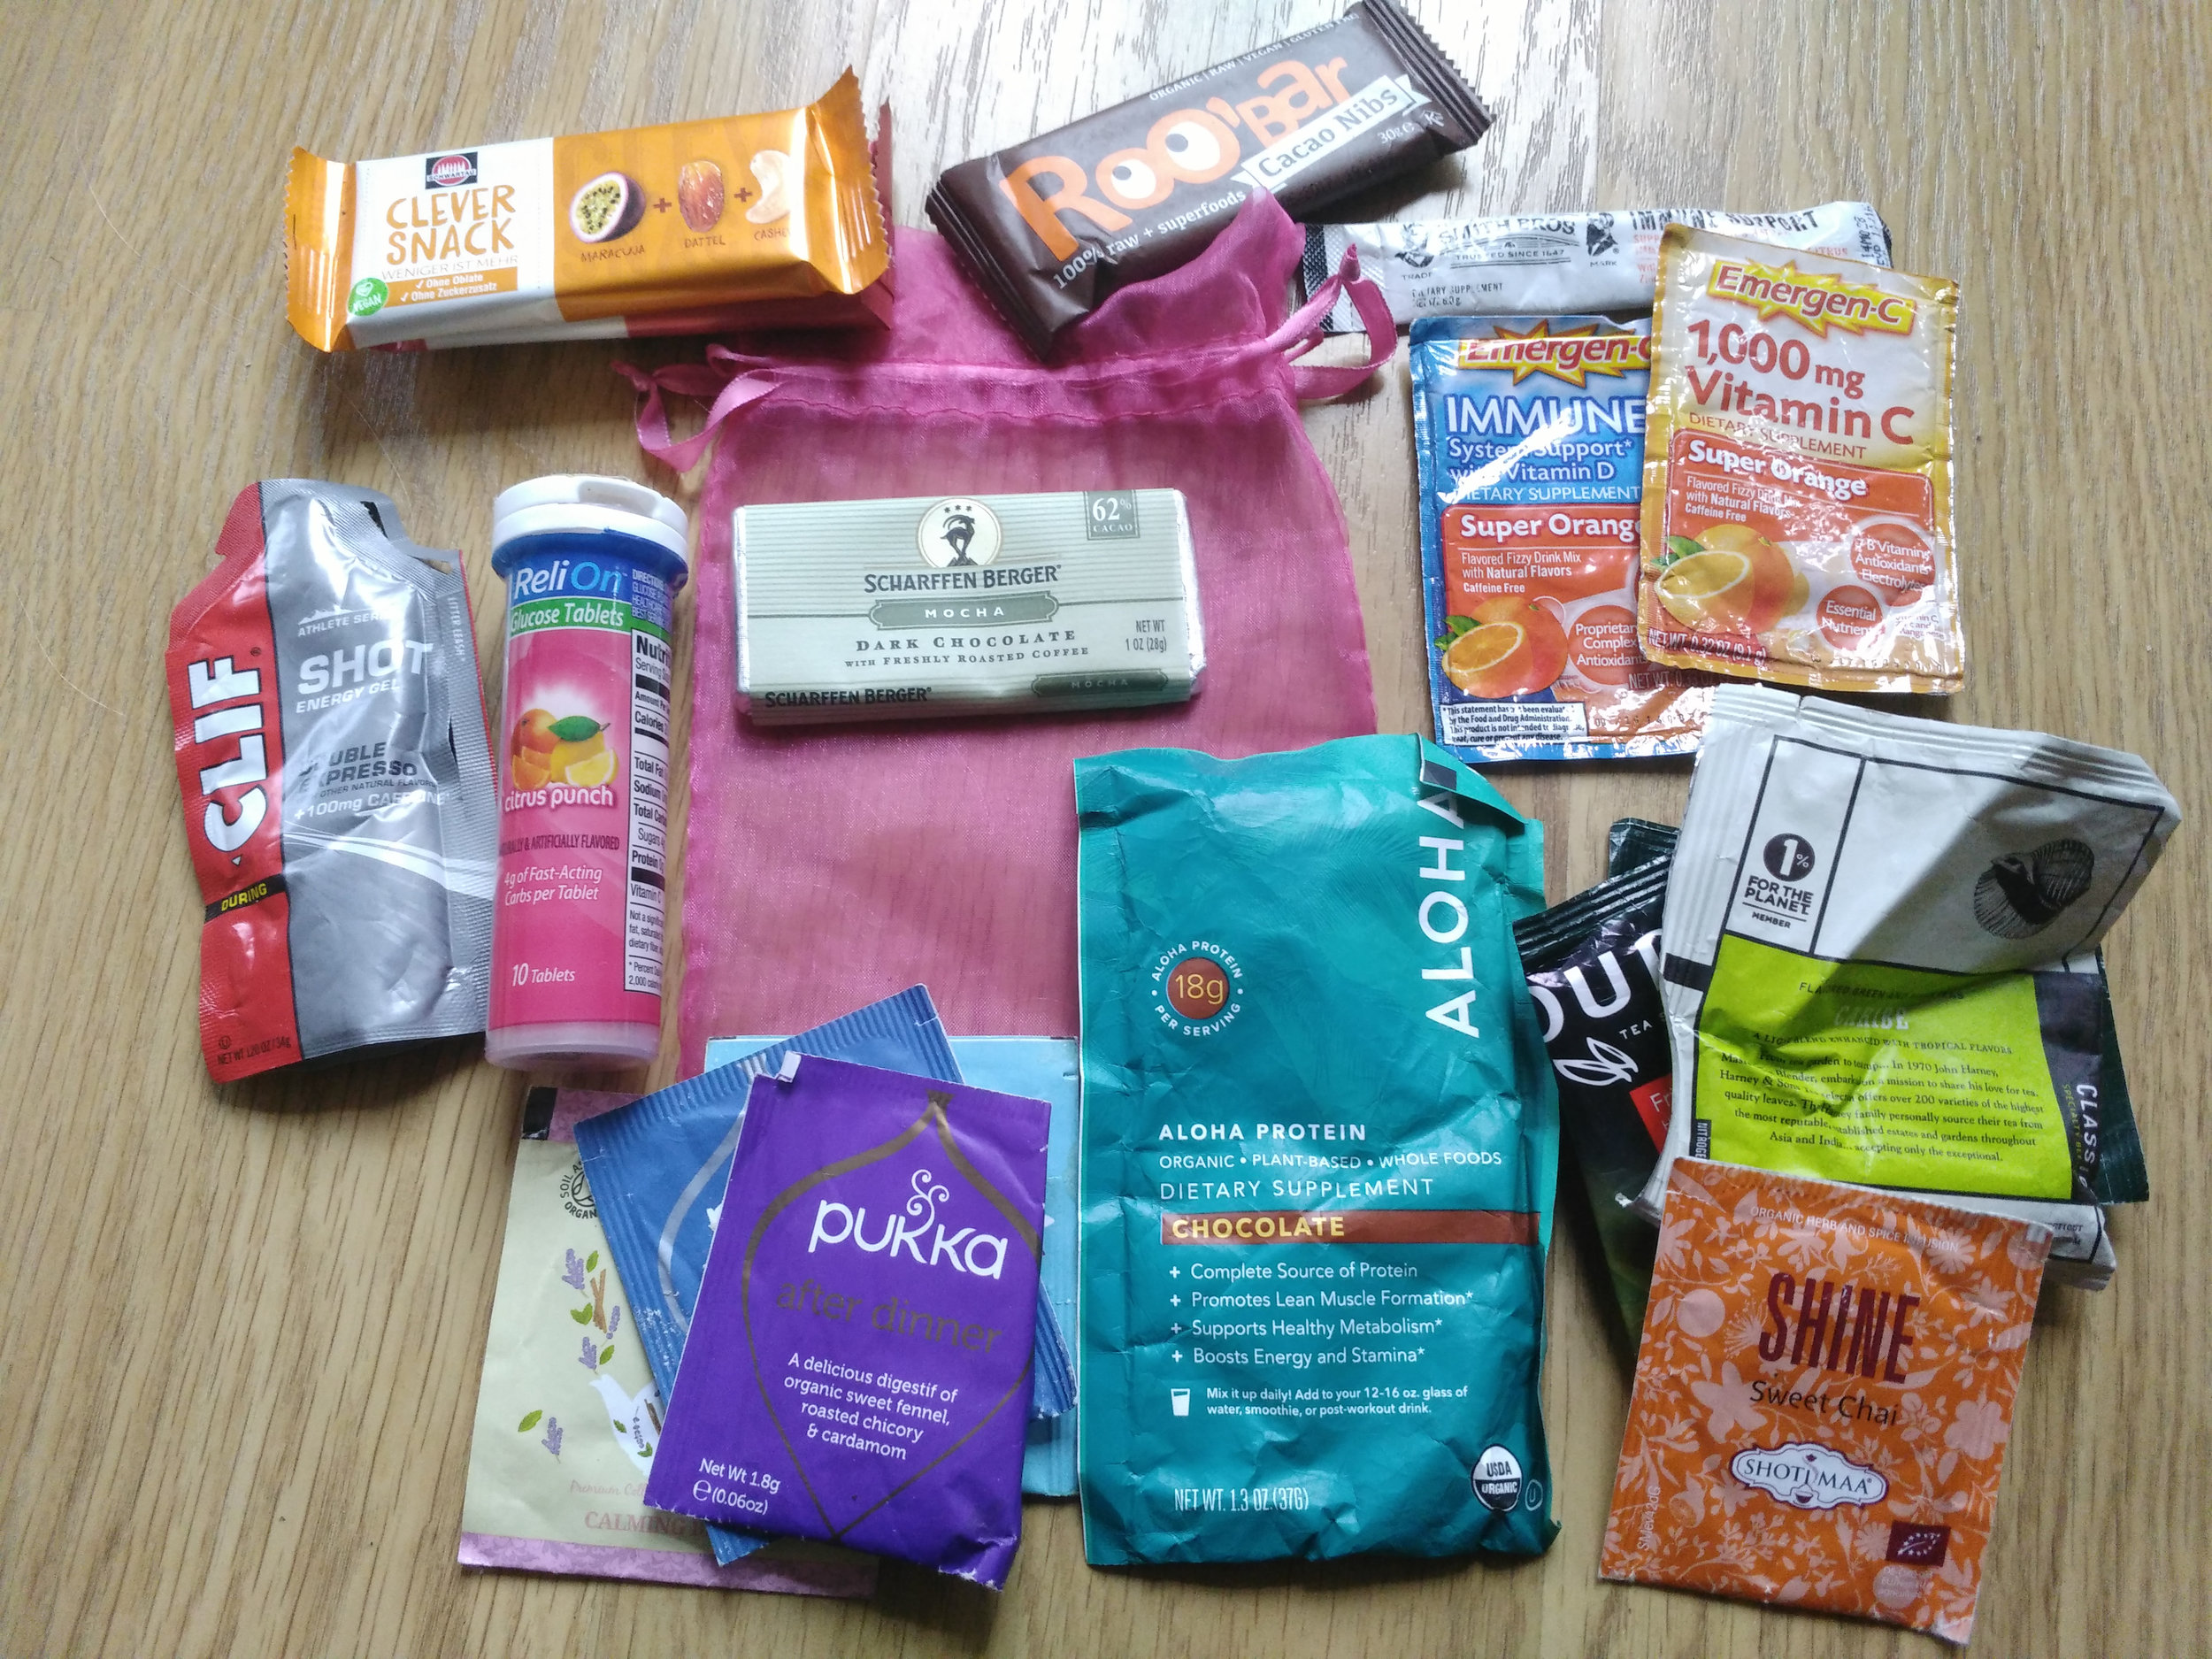 gluten free, Asia, Japan, travel, traveling gluten free, traveling asia gluten free, dairy free, expat, work travel, healthy, diet, long haul travel, long haul food, food for planes, gluten free plane, gluten free airports,